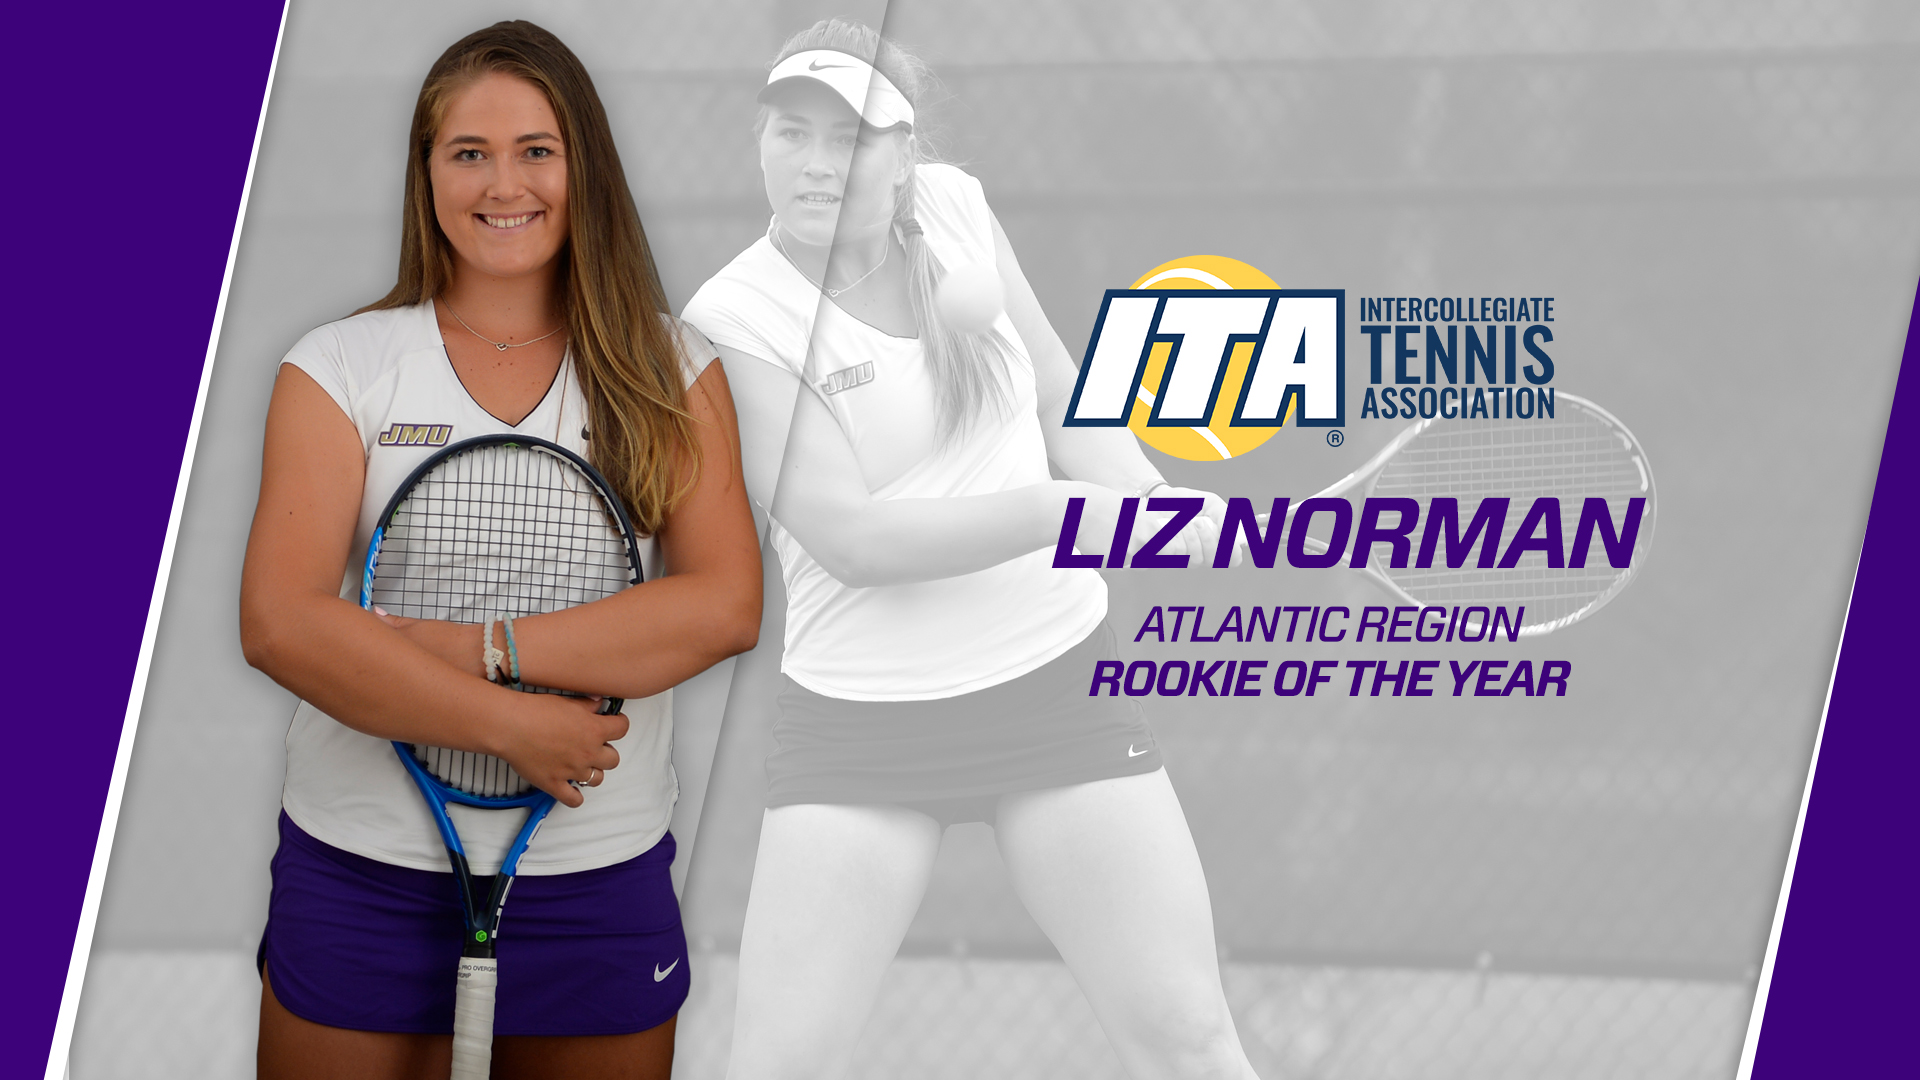 Women's Tennis: Norman Named ITA Atlantic Region Rookie of the Year